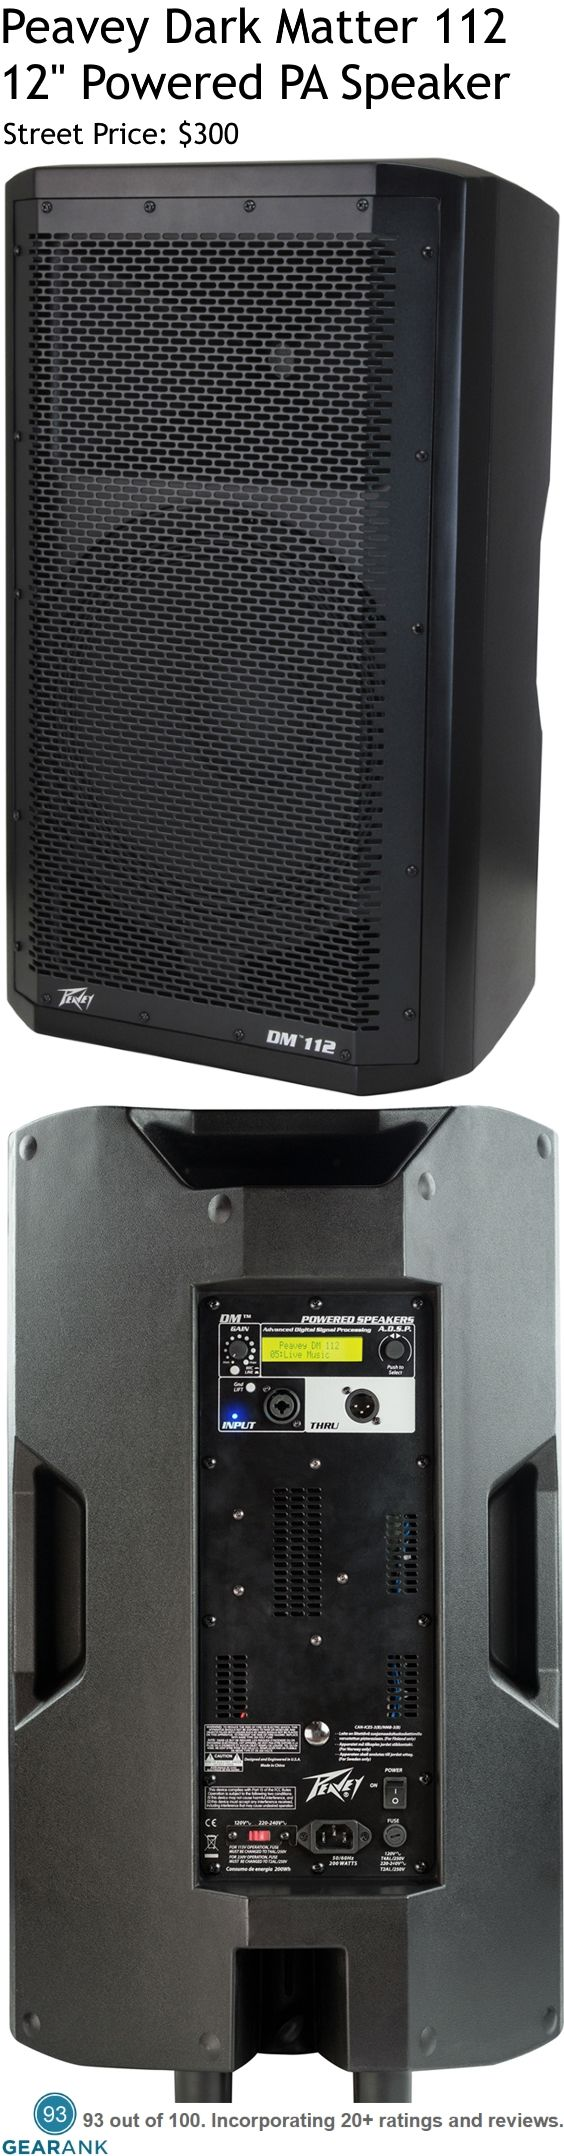 "Peavey Dark Matter 112 - 12"" Powered PA Speaker. Output Power Peak: 660W. Output Power Continuous: : 205W. LF Driver: 12"" Cone, 1.5"" Voice Coil. HF Driver: 1.4"" Titanium Diaphragm. Frequency Response: 68Hz-19kHz (+/- 6dB). Maximum Peak SPL: 124dB. Crossover Frequency: 3.1kHz. For a detailed guide to the Best Powered PA Speakers see https://www.gearank.com/guides/powered-pa-speakers"